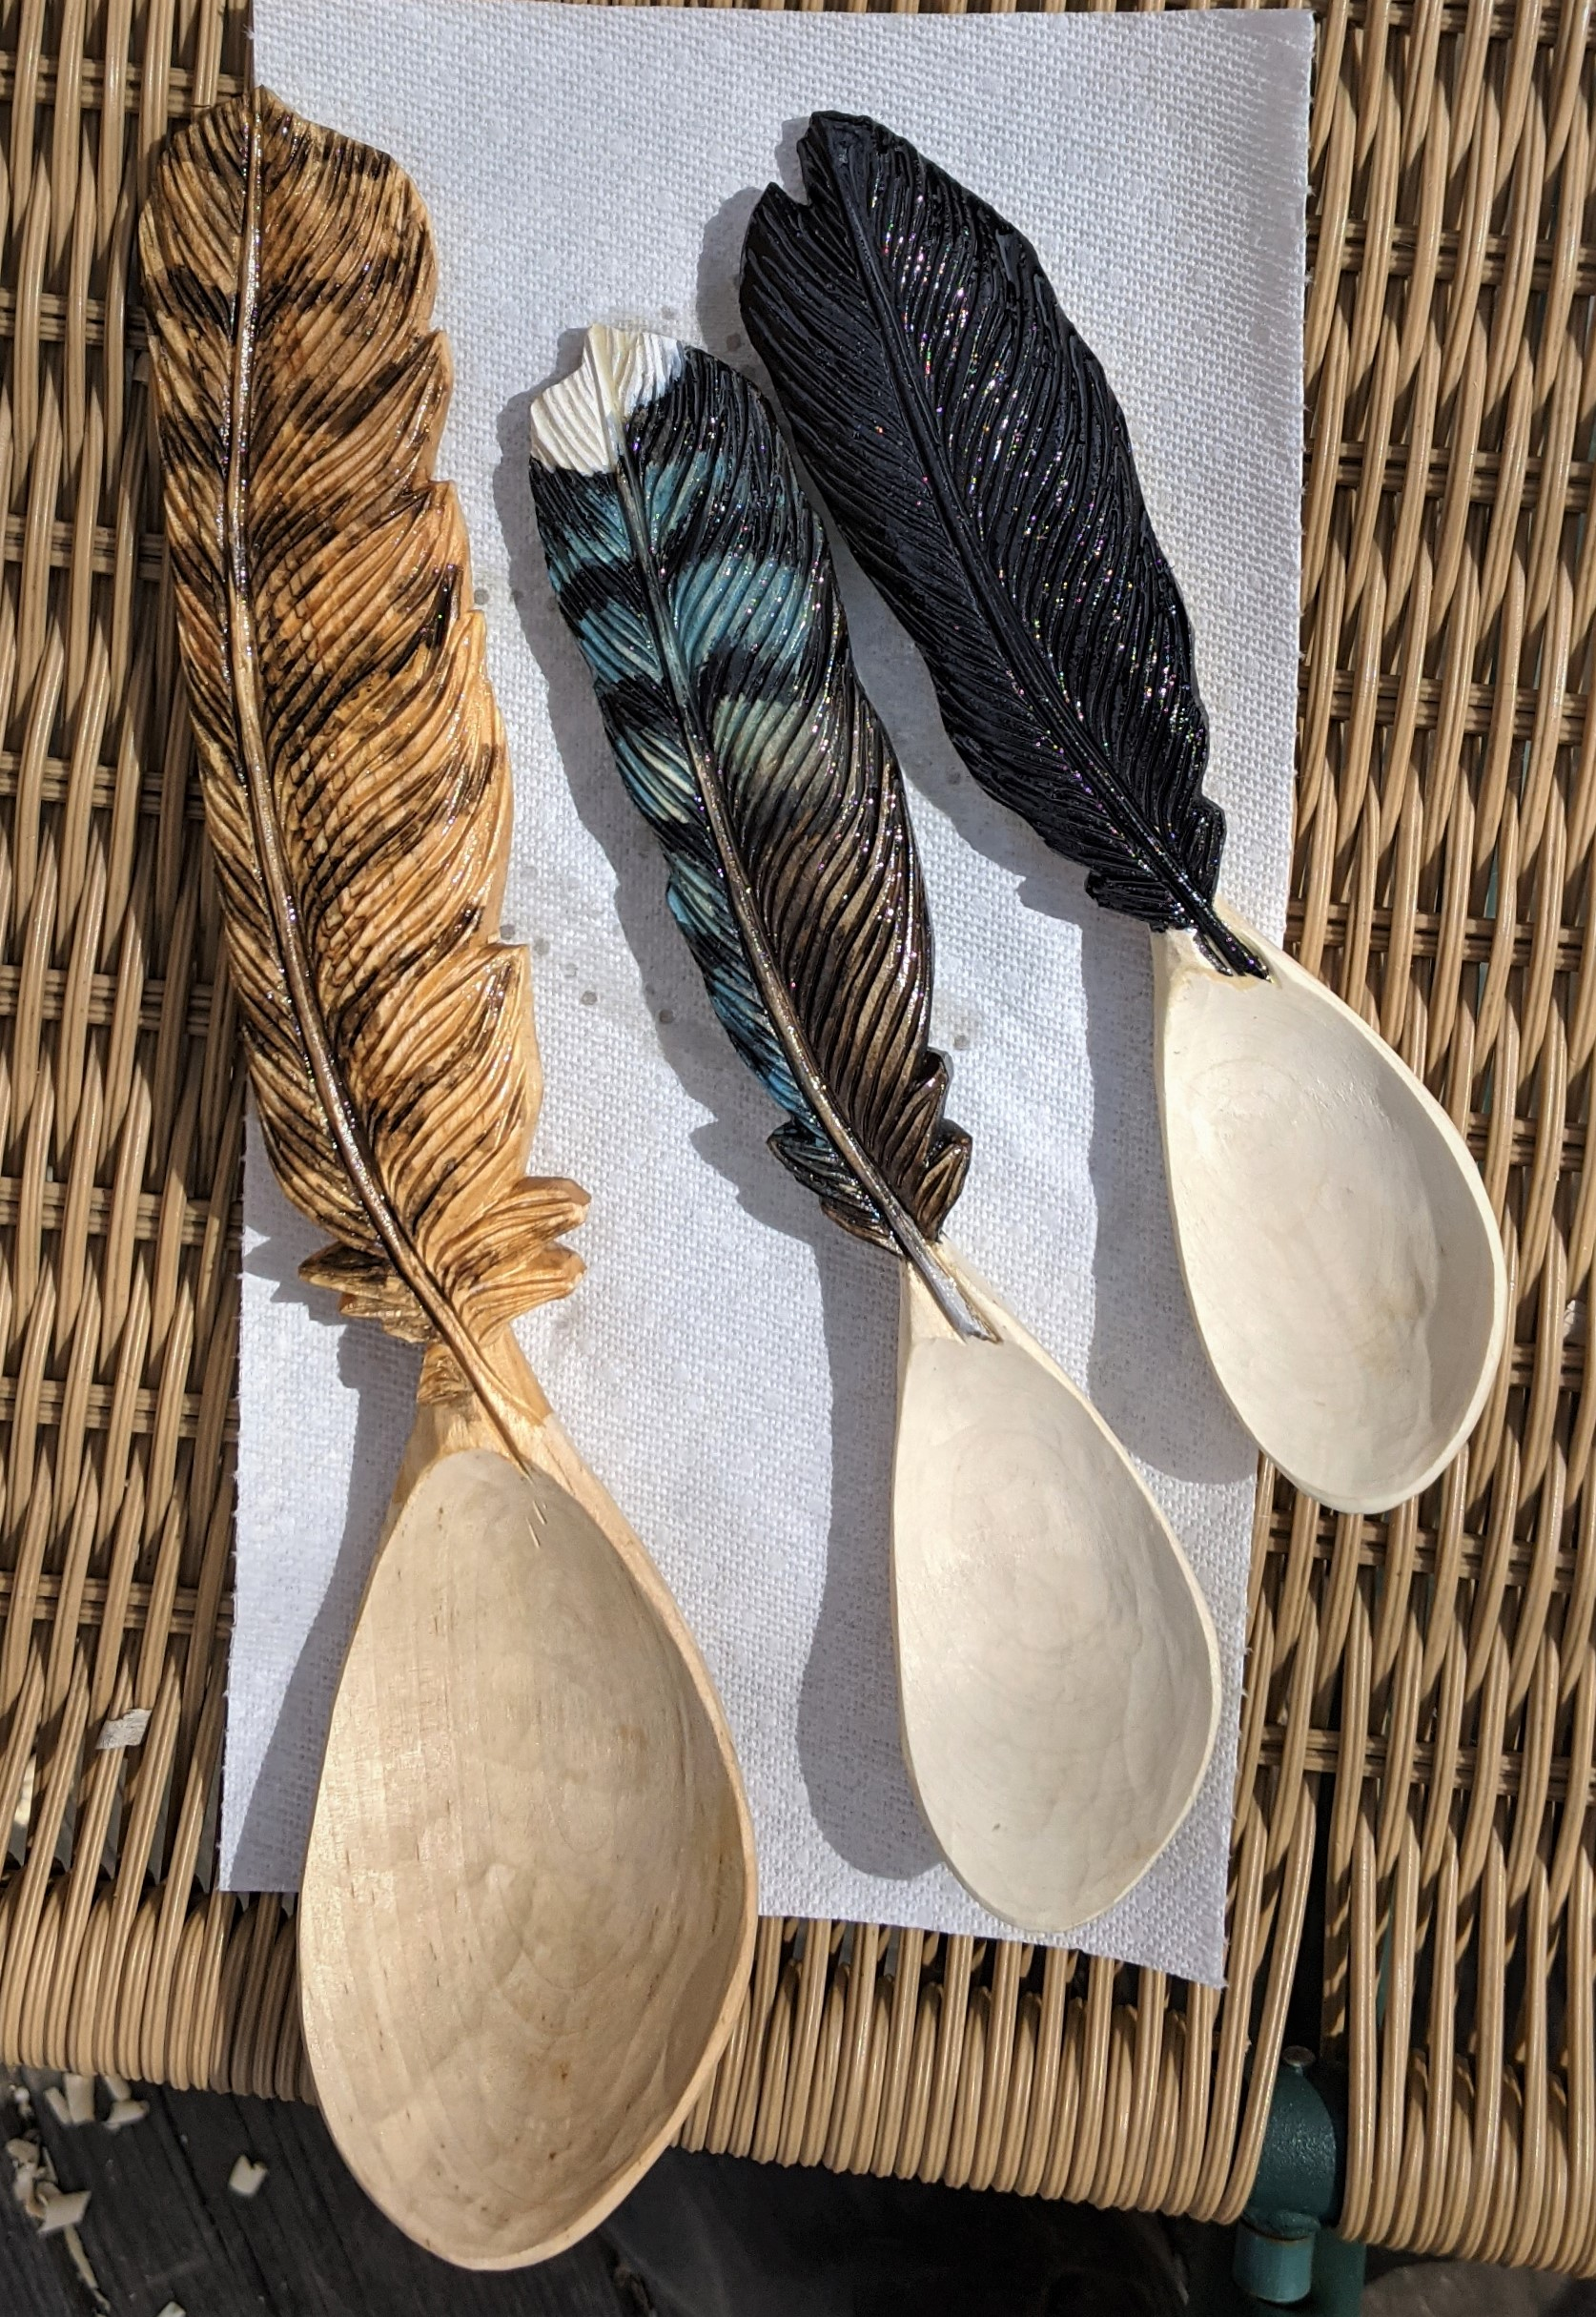 Allowing the Paint to Dry on Wooden Spoons